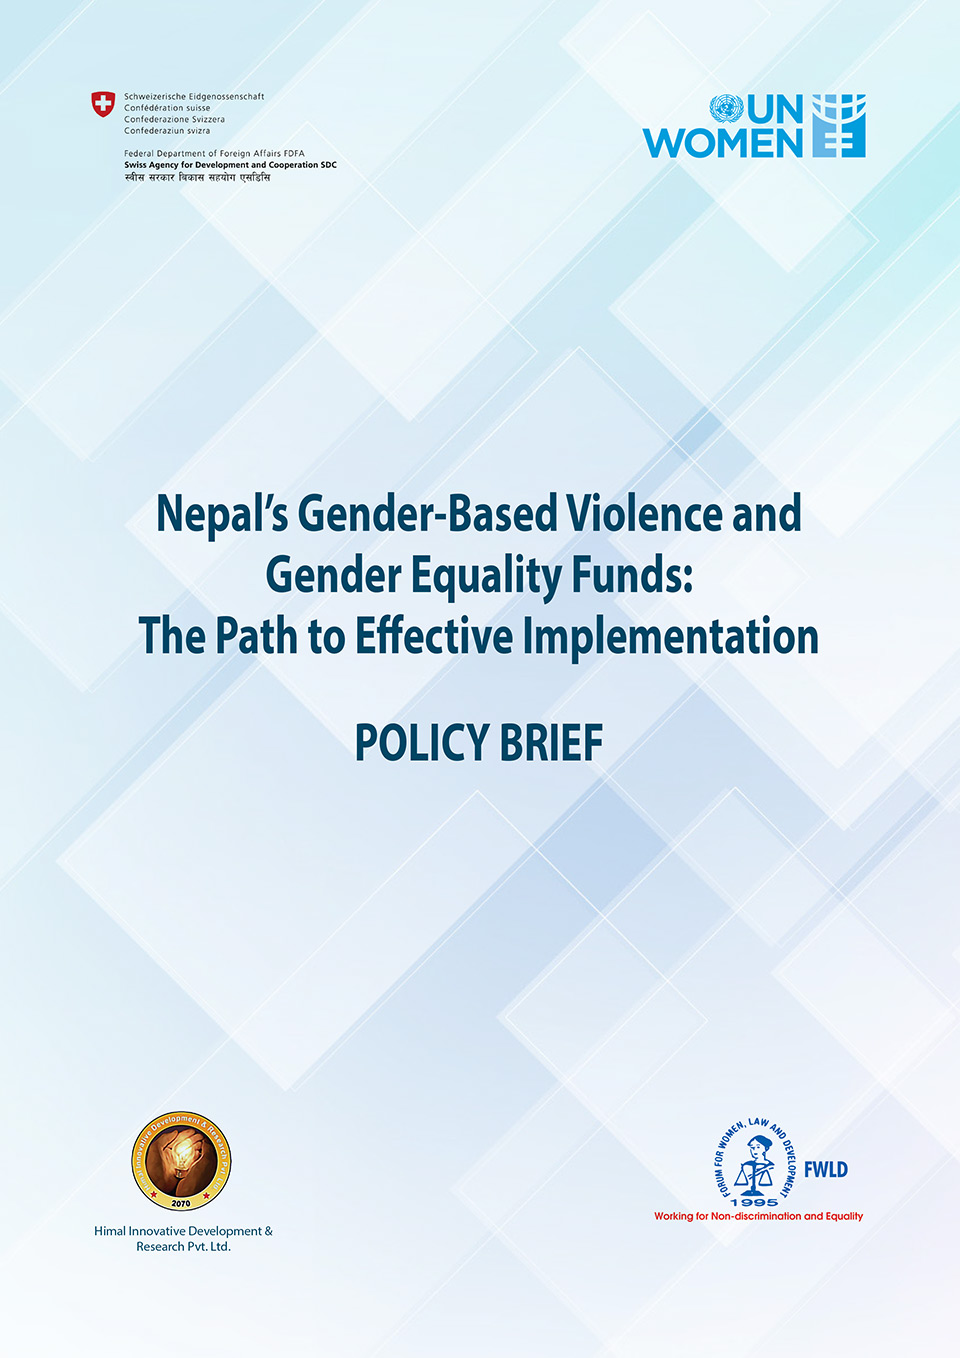 Nepal's Gender-Based Violence and Gender Equality Funds: The Path to Effective Implementation